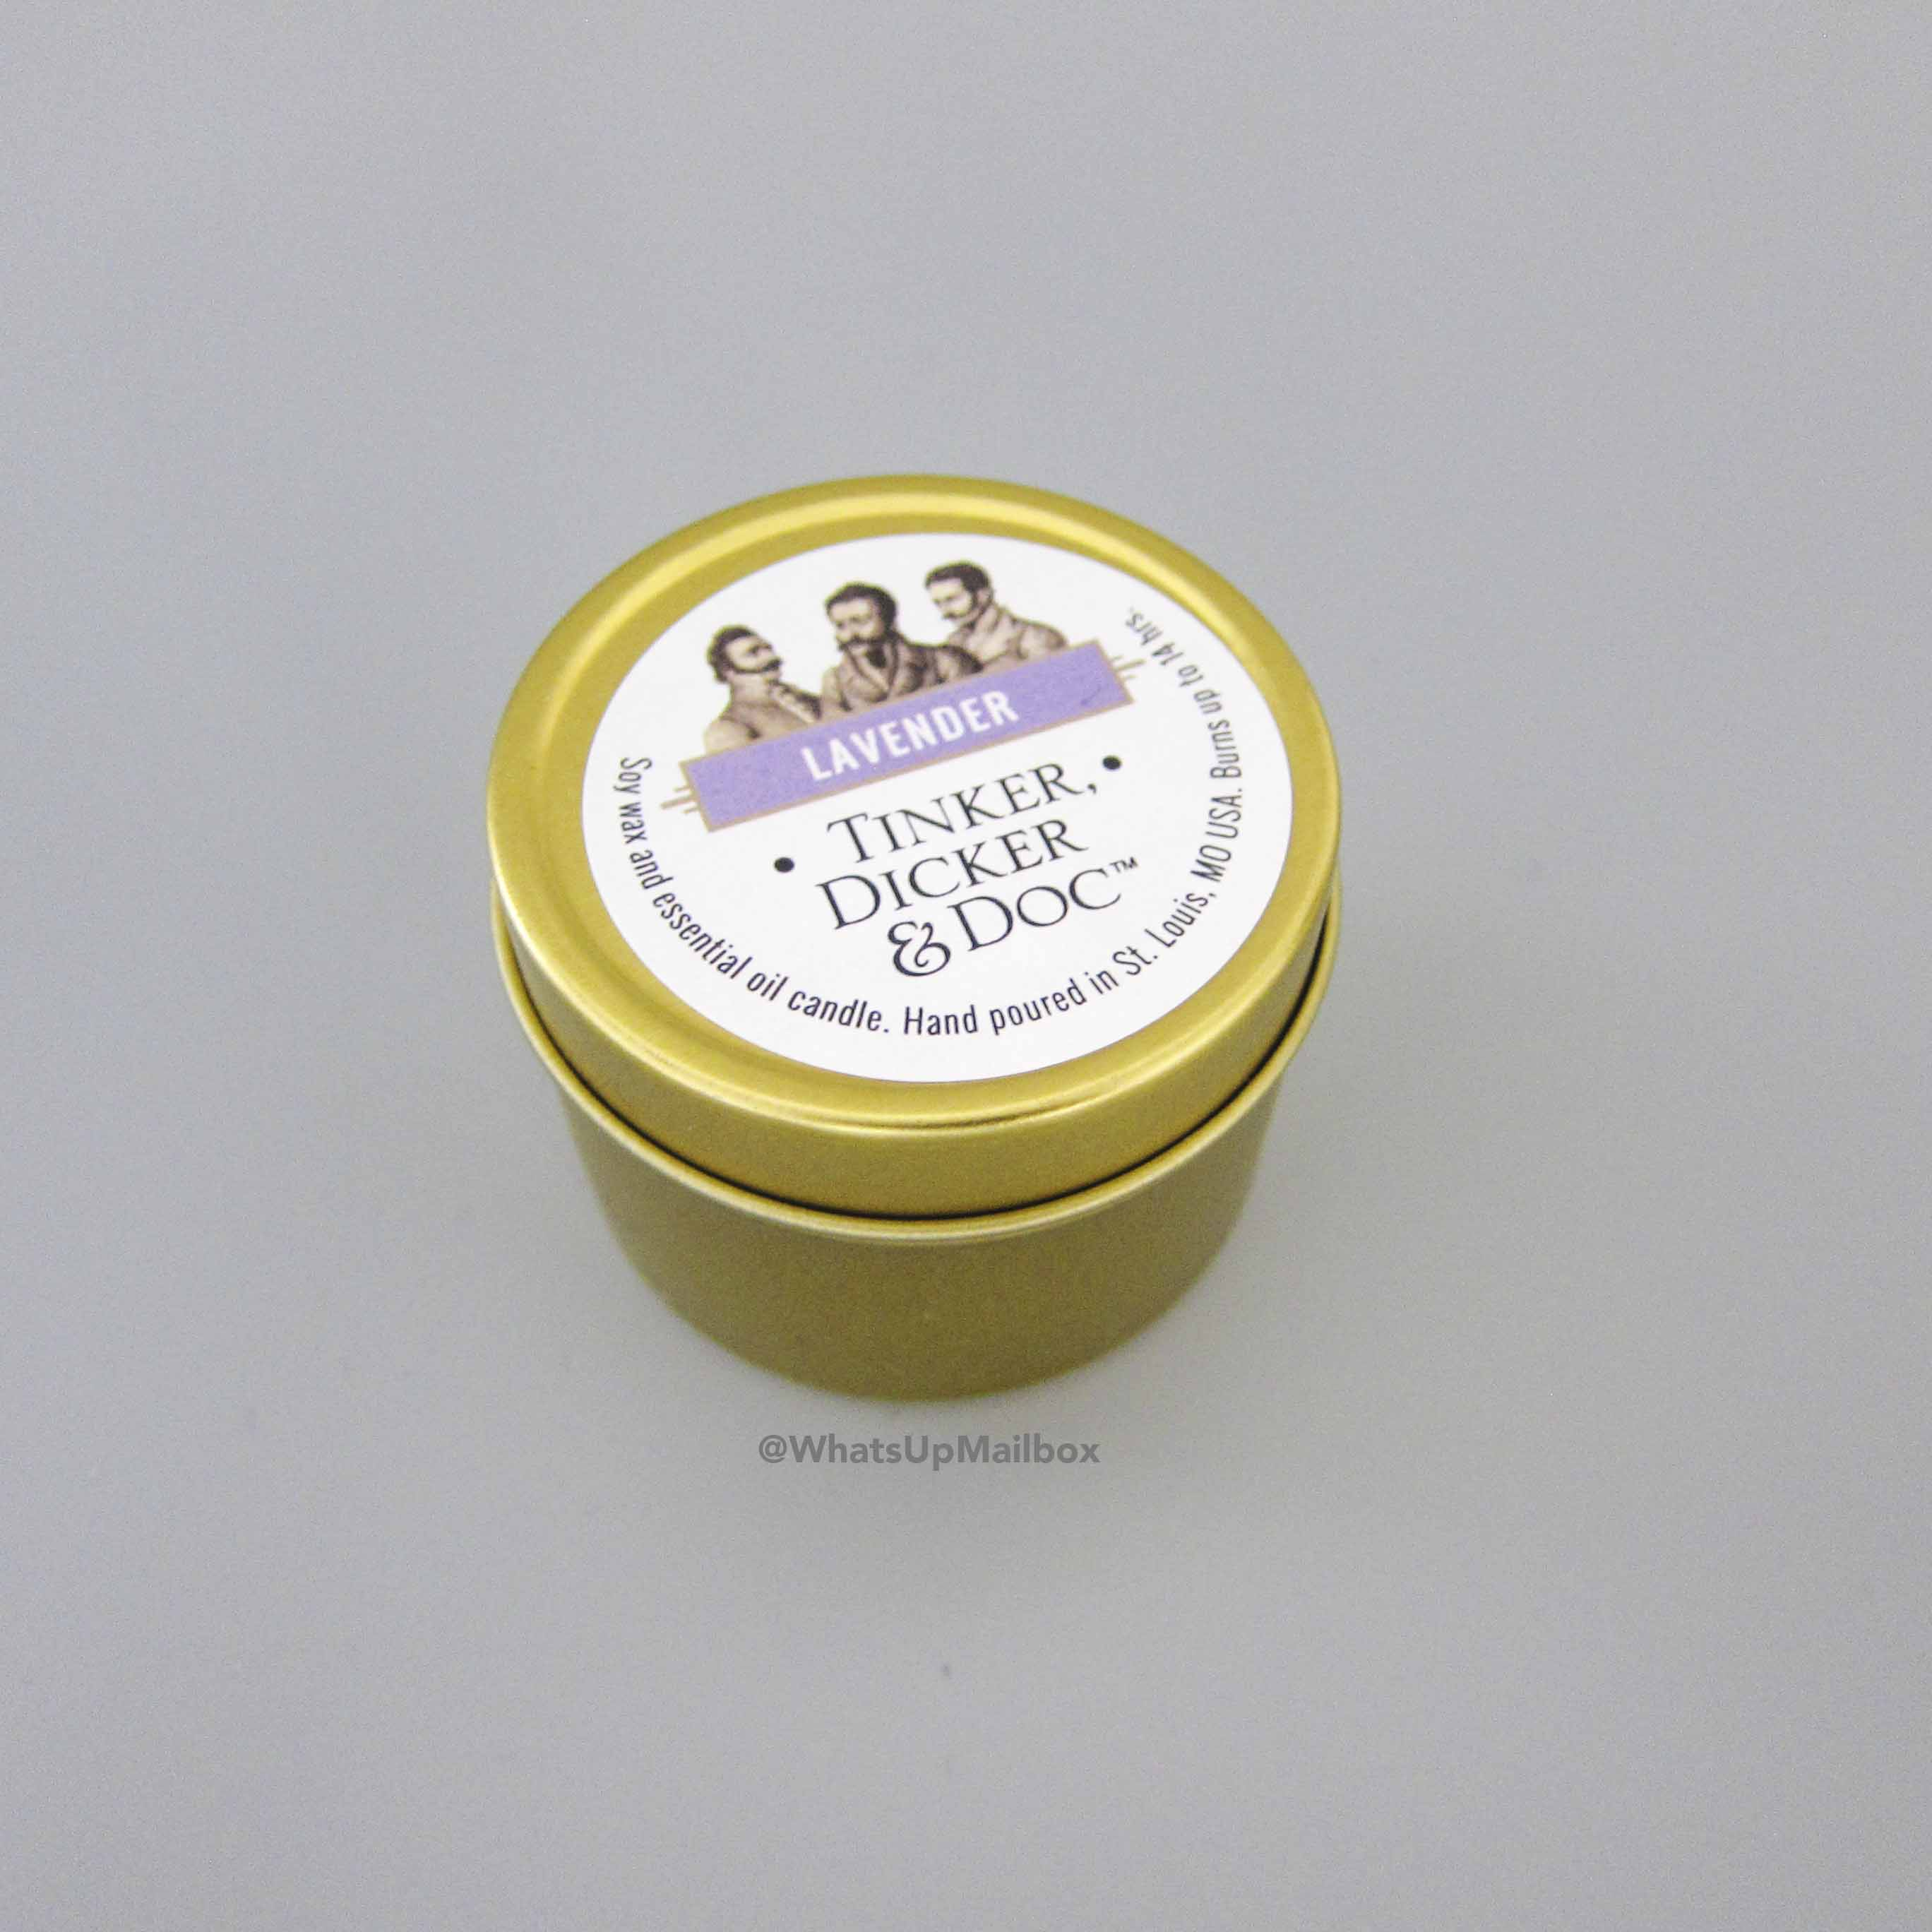 Tinker, Dicker & Doc Lavender Candle